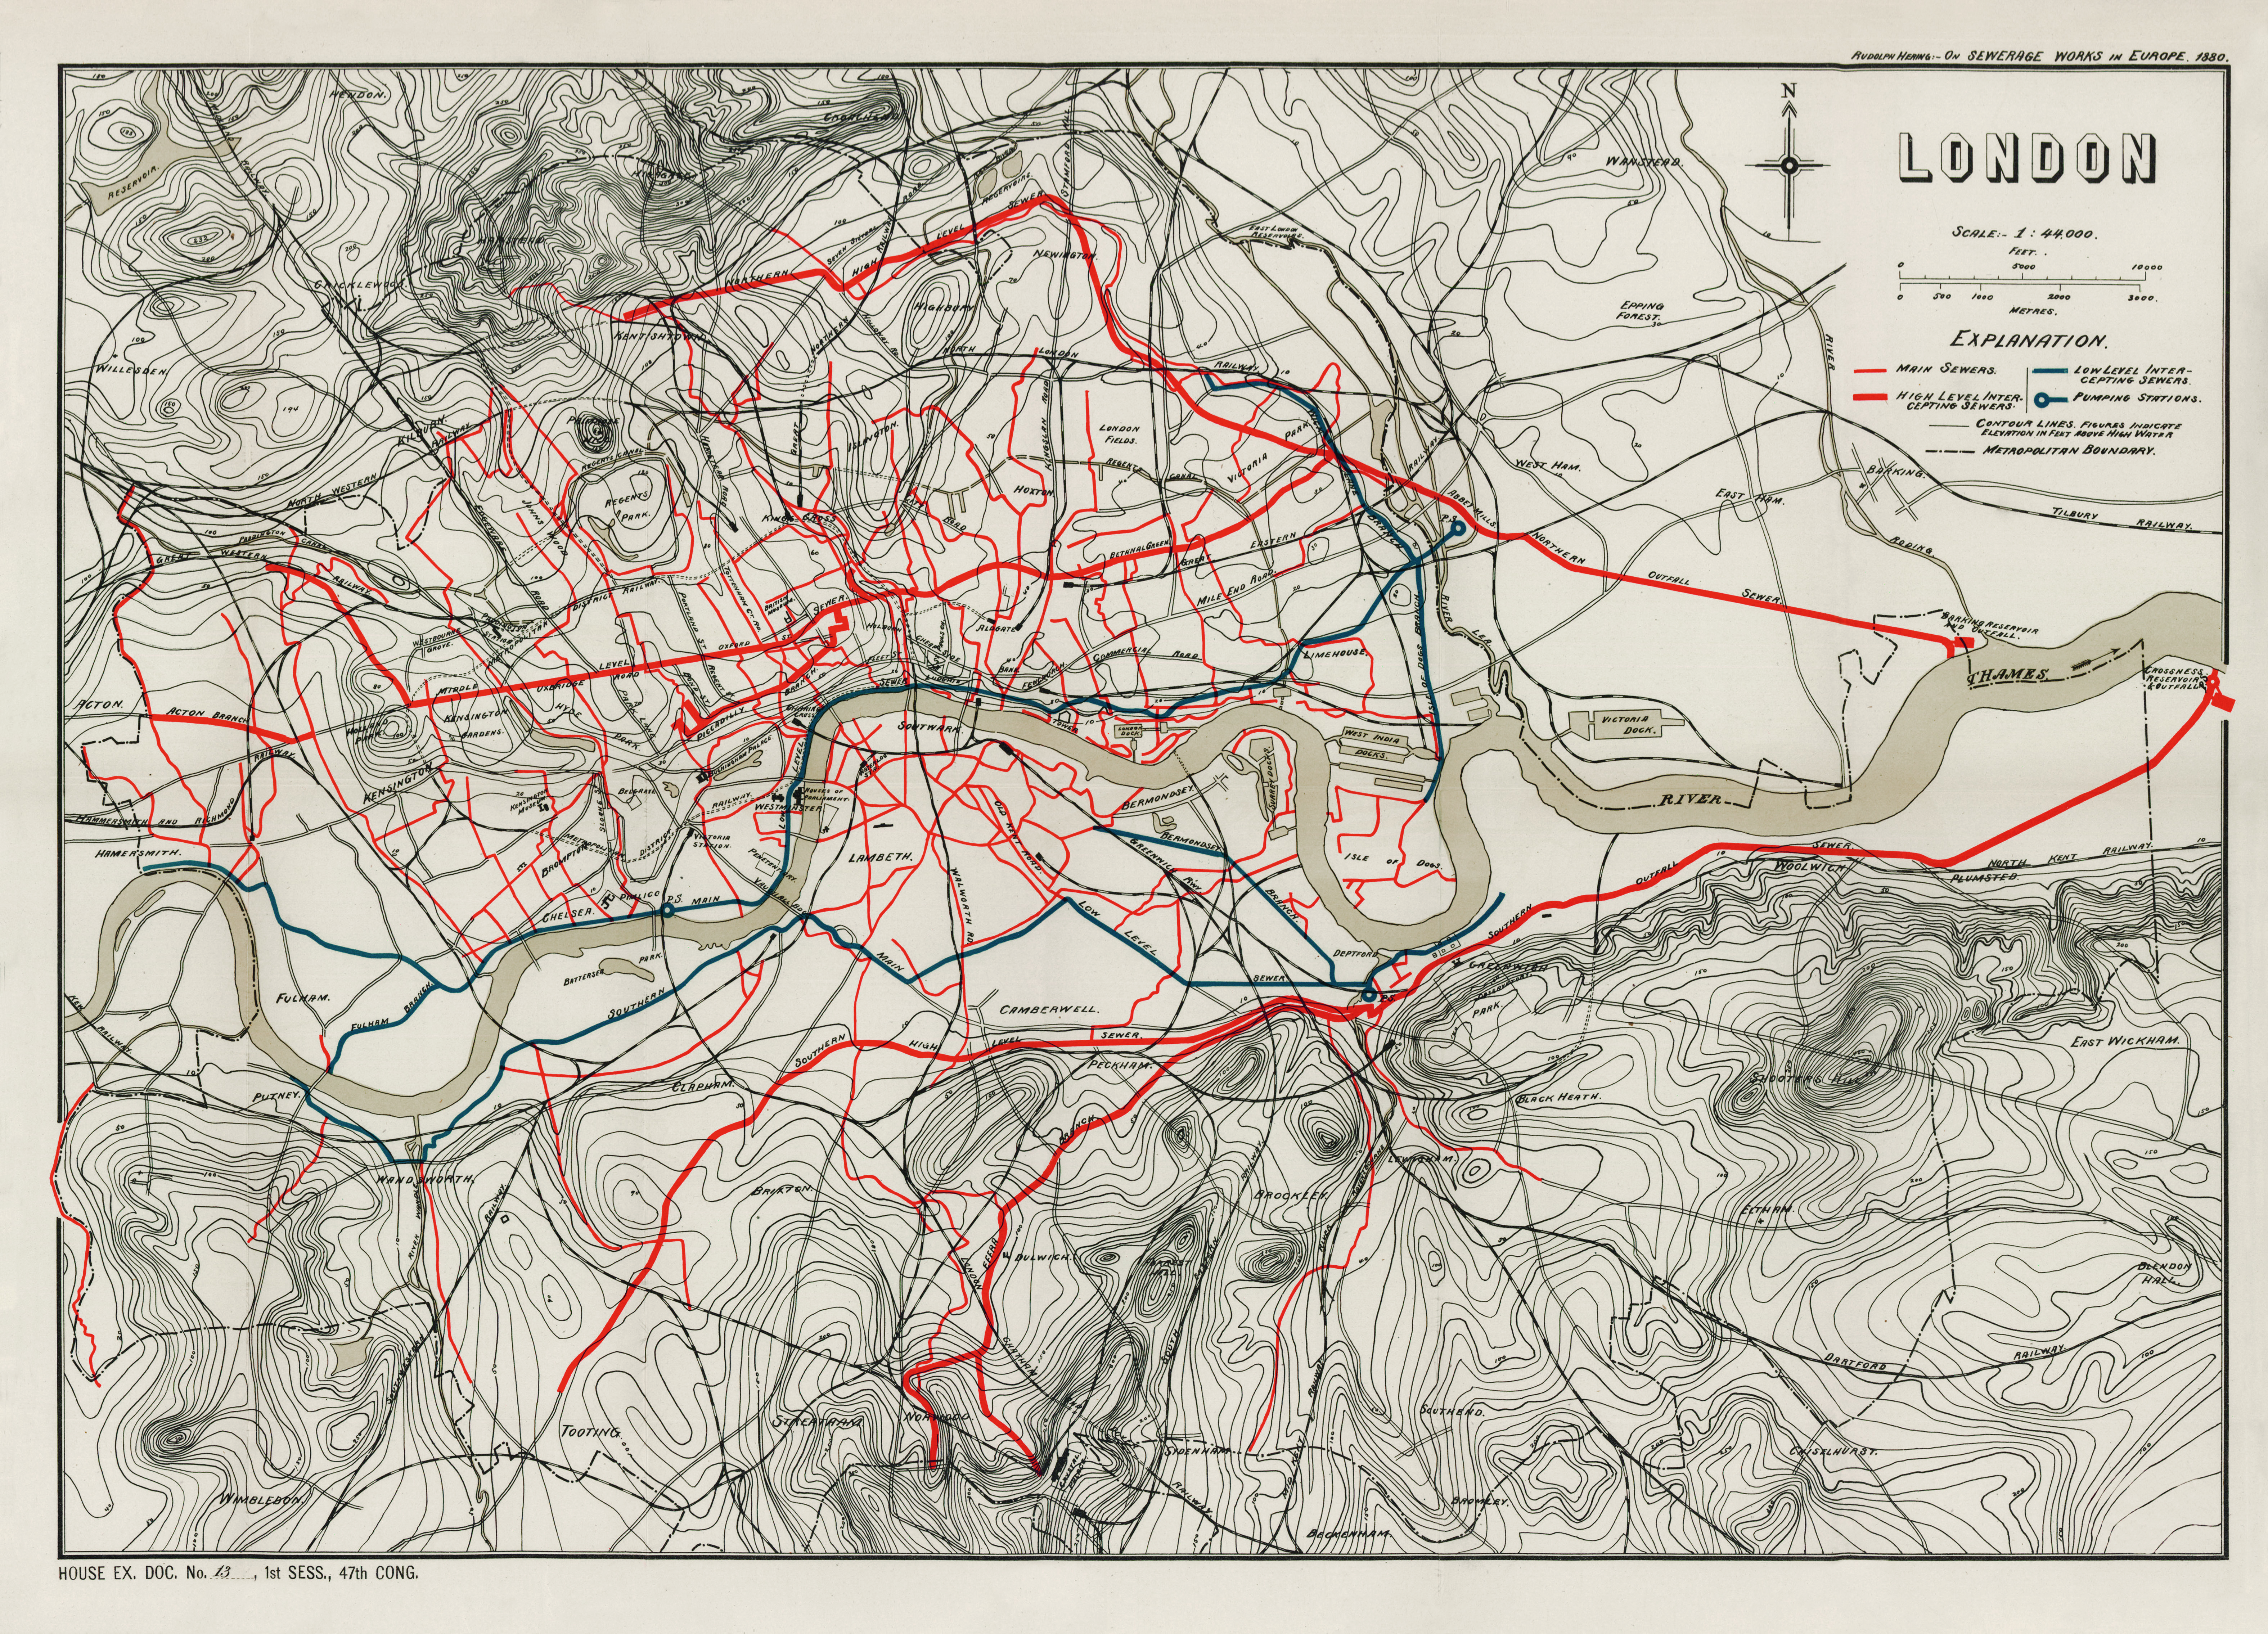 Sir Joseph Bazalgette was the creator of London's great Victorian sewage system, depicted here on this map. The most prominent red lines are the main interception sewers.